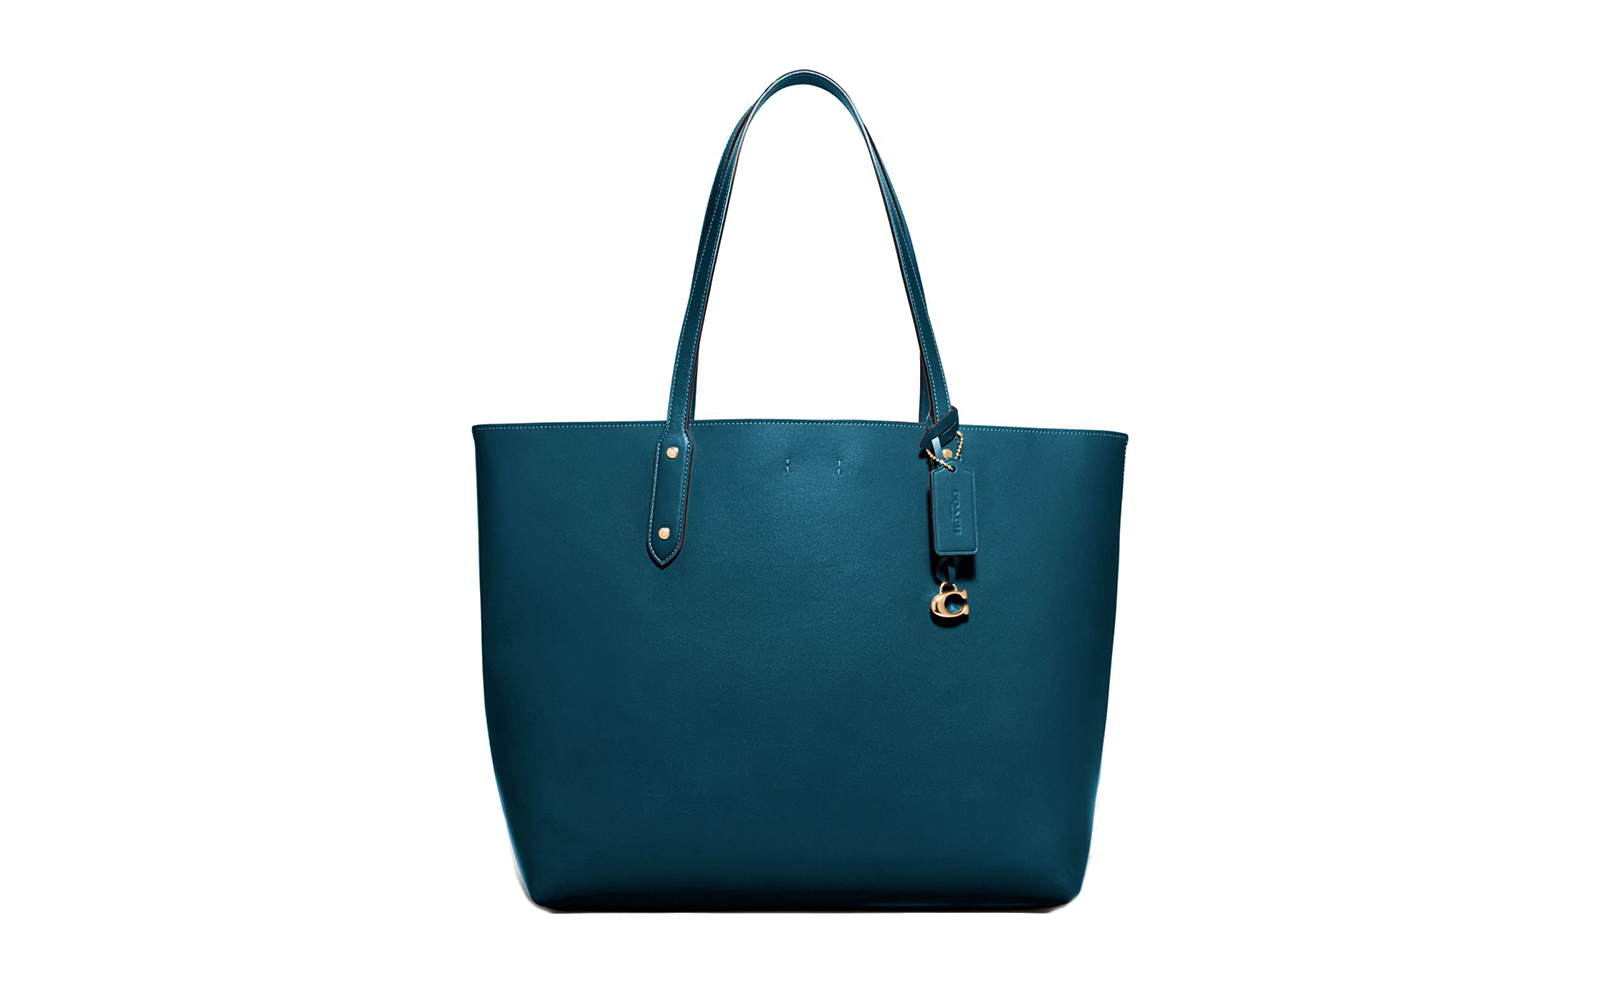 Central Tote in Peacock/Gold